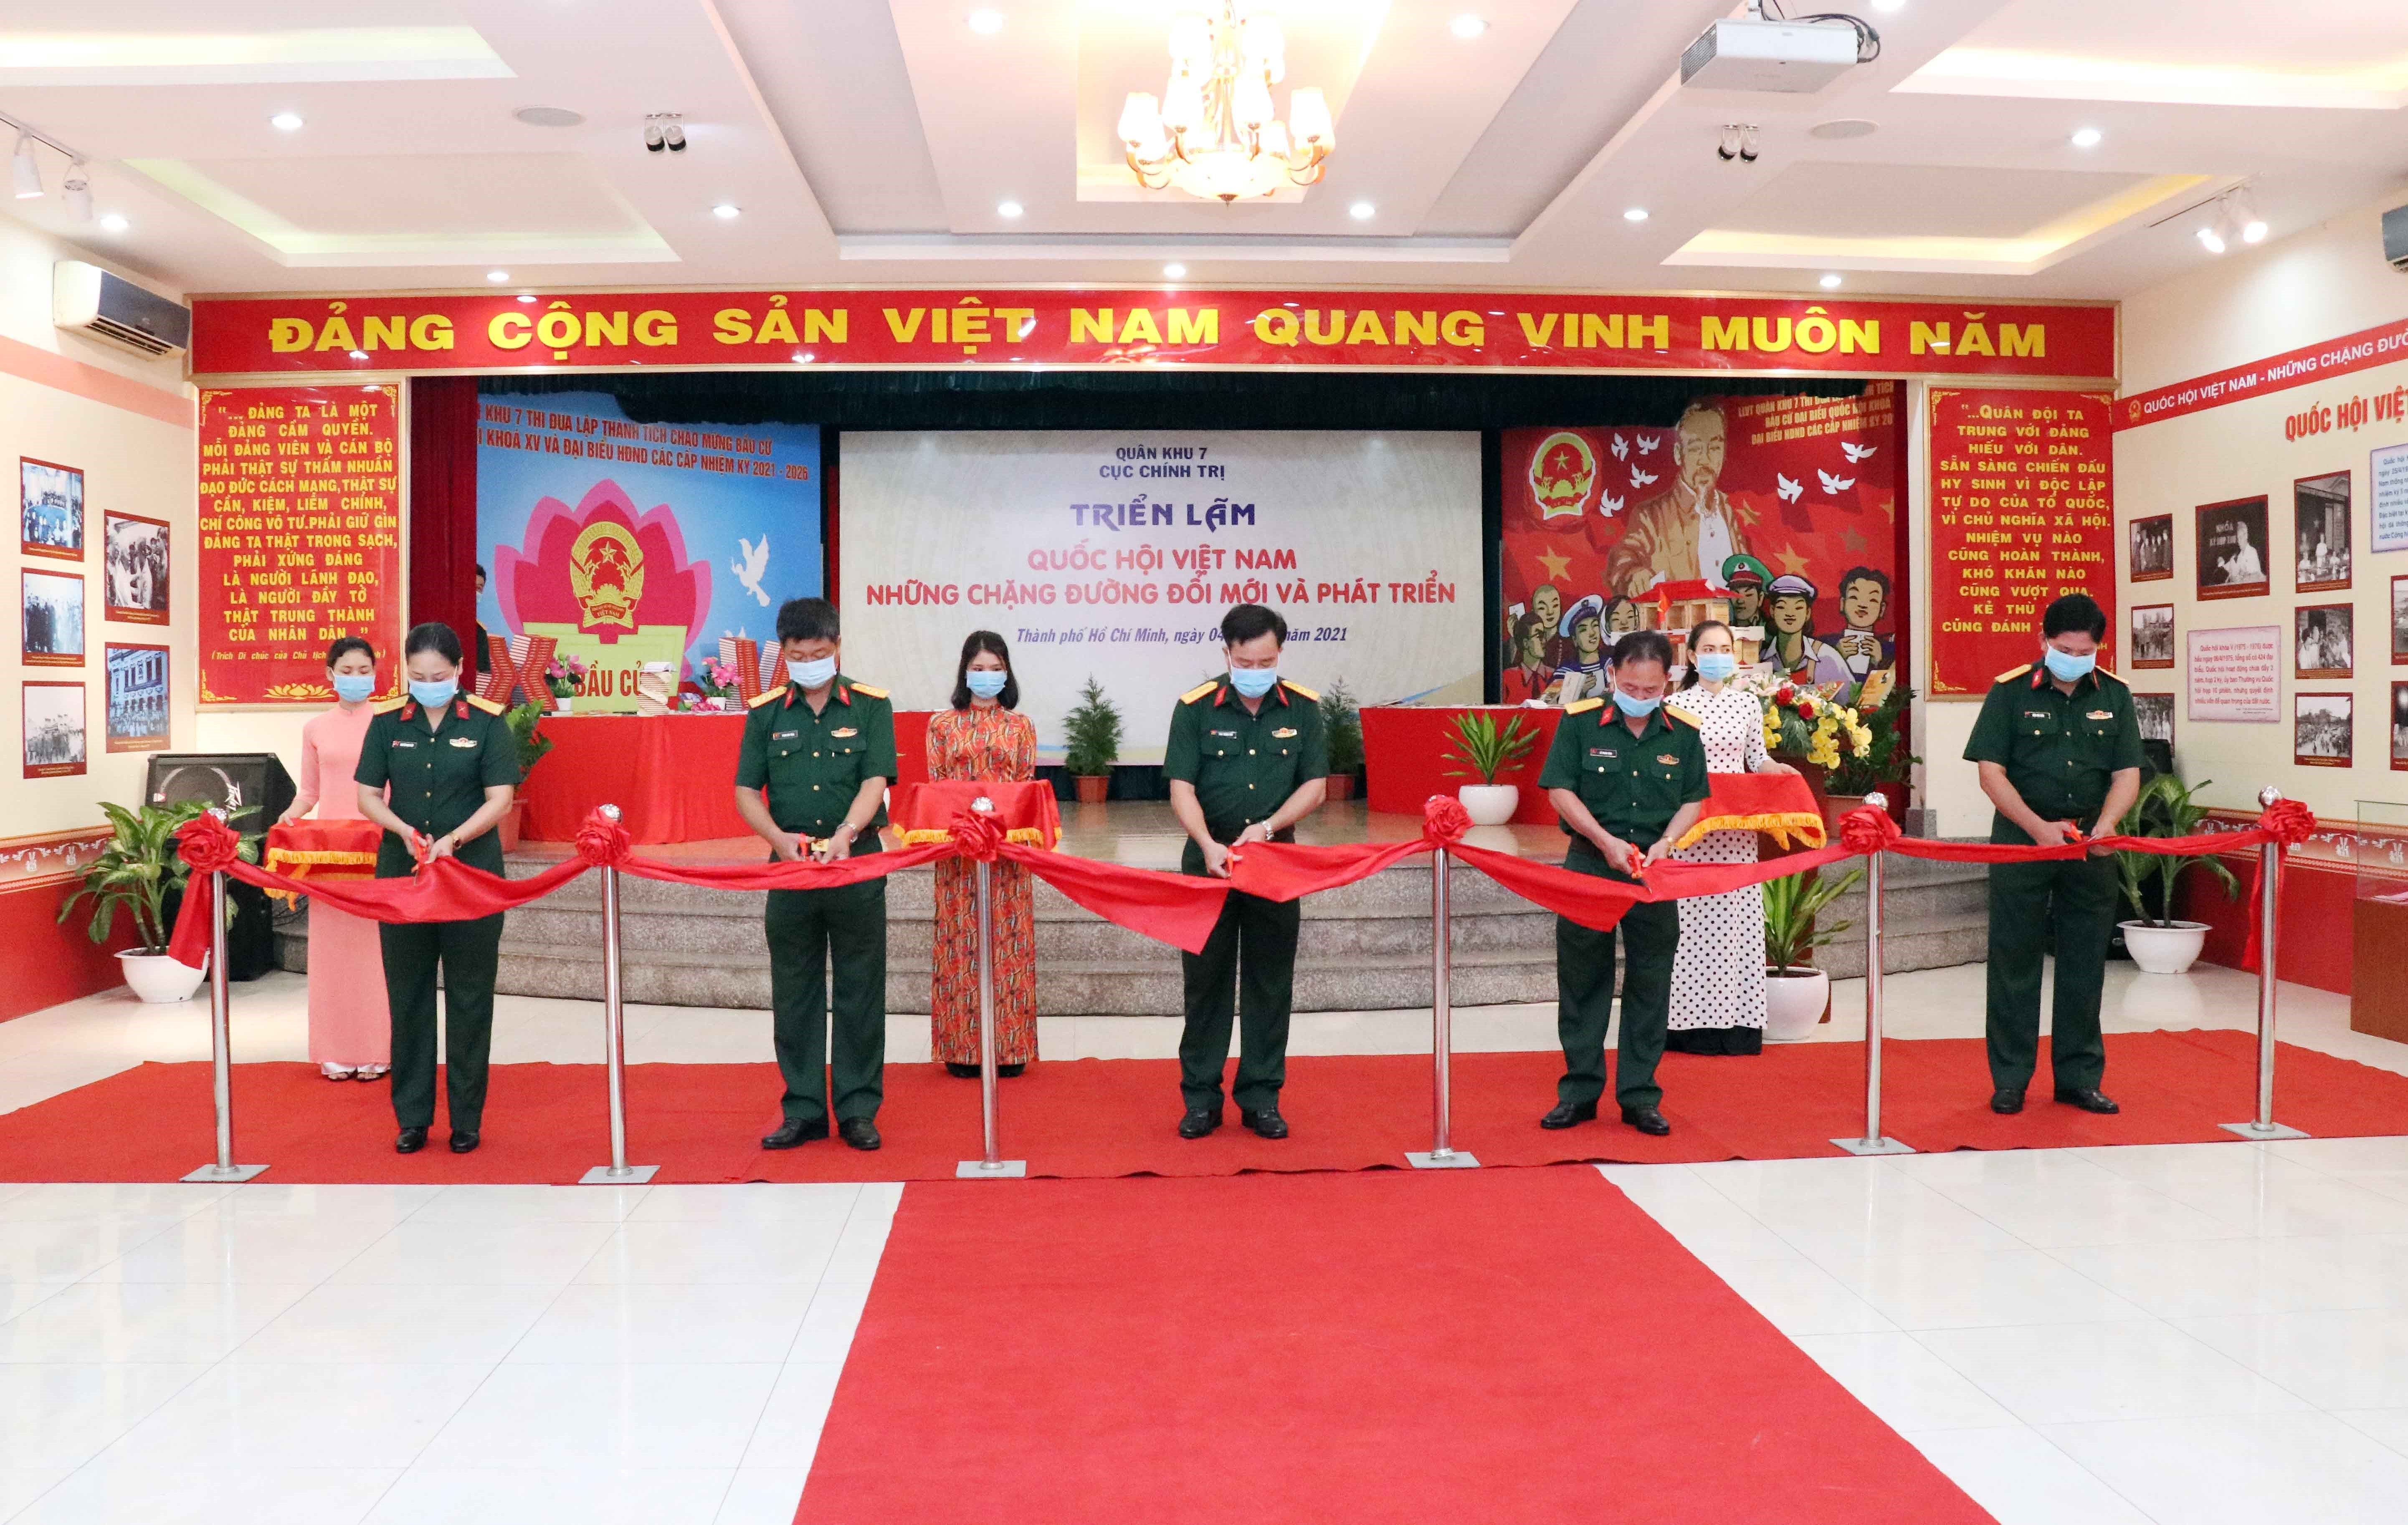 Exhibition on National Assembly opens in HCM City hinh anh 1